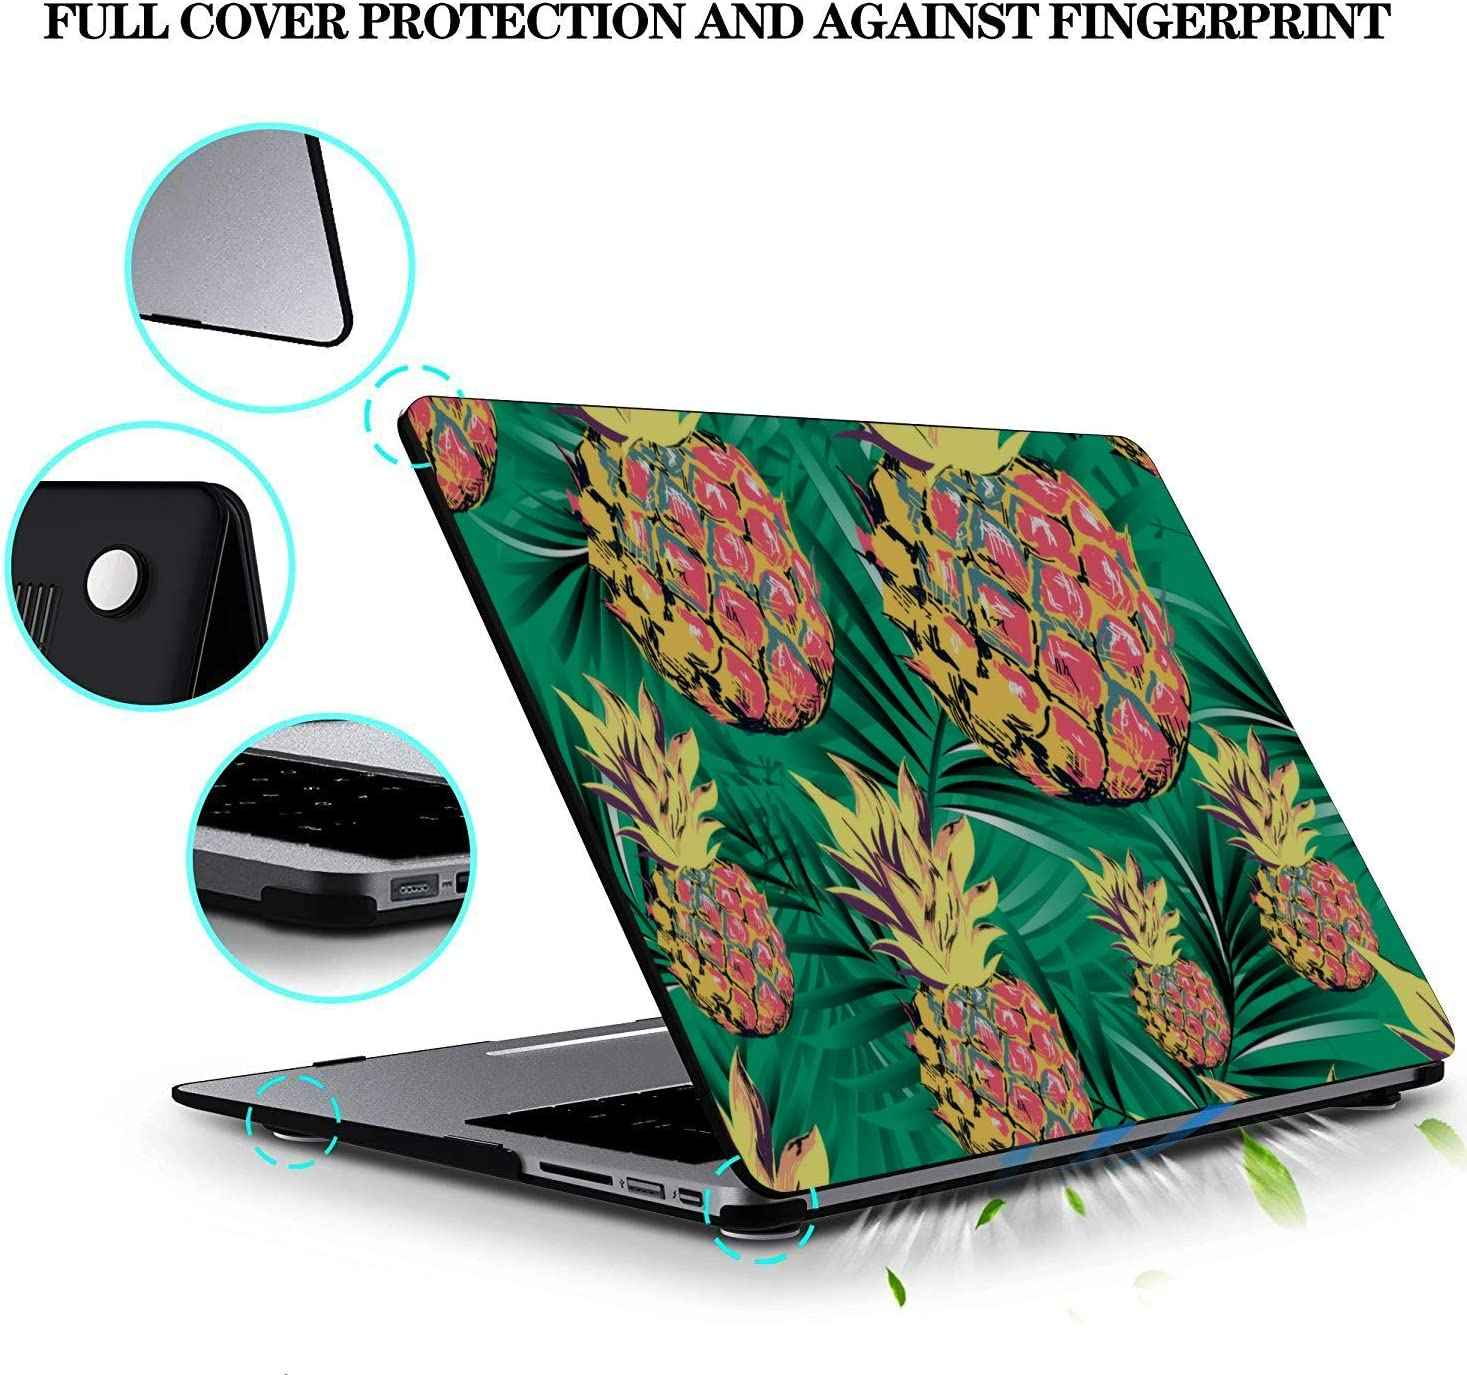 MacBook Computer Case Summer Romantic Fruit Cute Pineapple Plastic Hard Shell Compatible Mac Air 11 Pro 13 15 MacBook Pro 13inch Case Protection for MacBook 2016-2019 Version